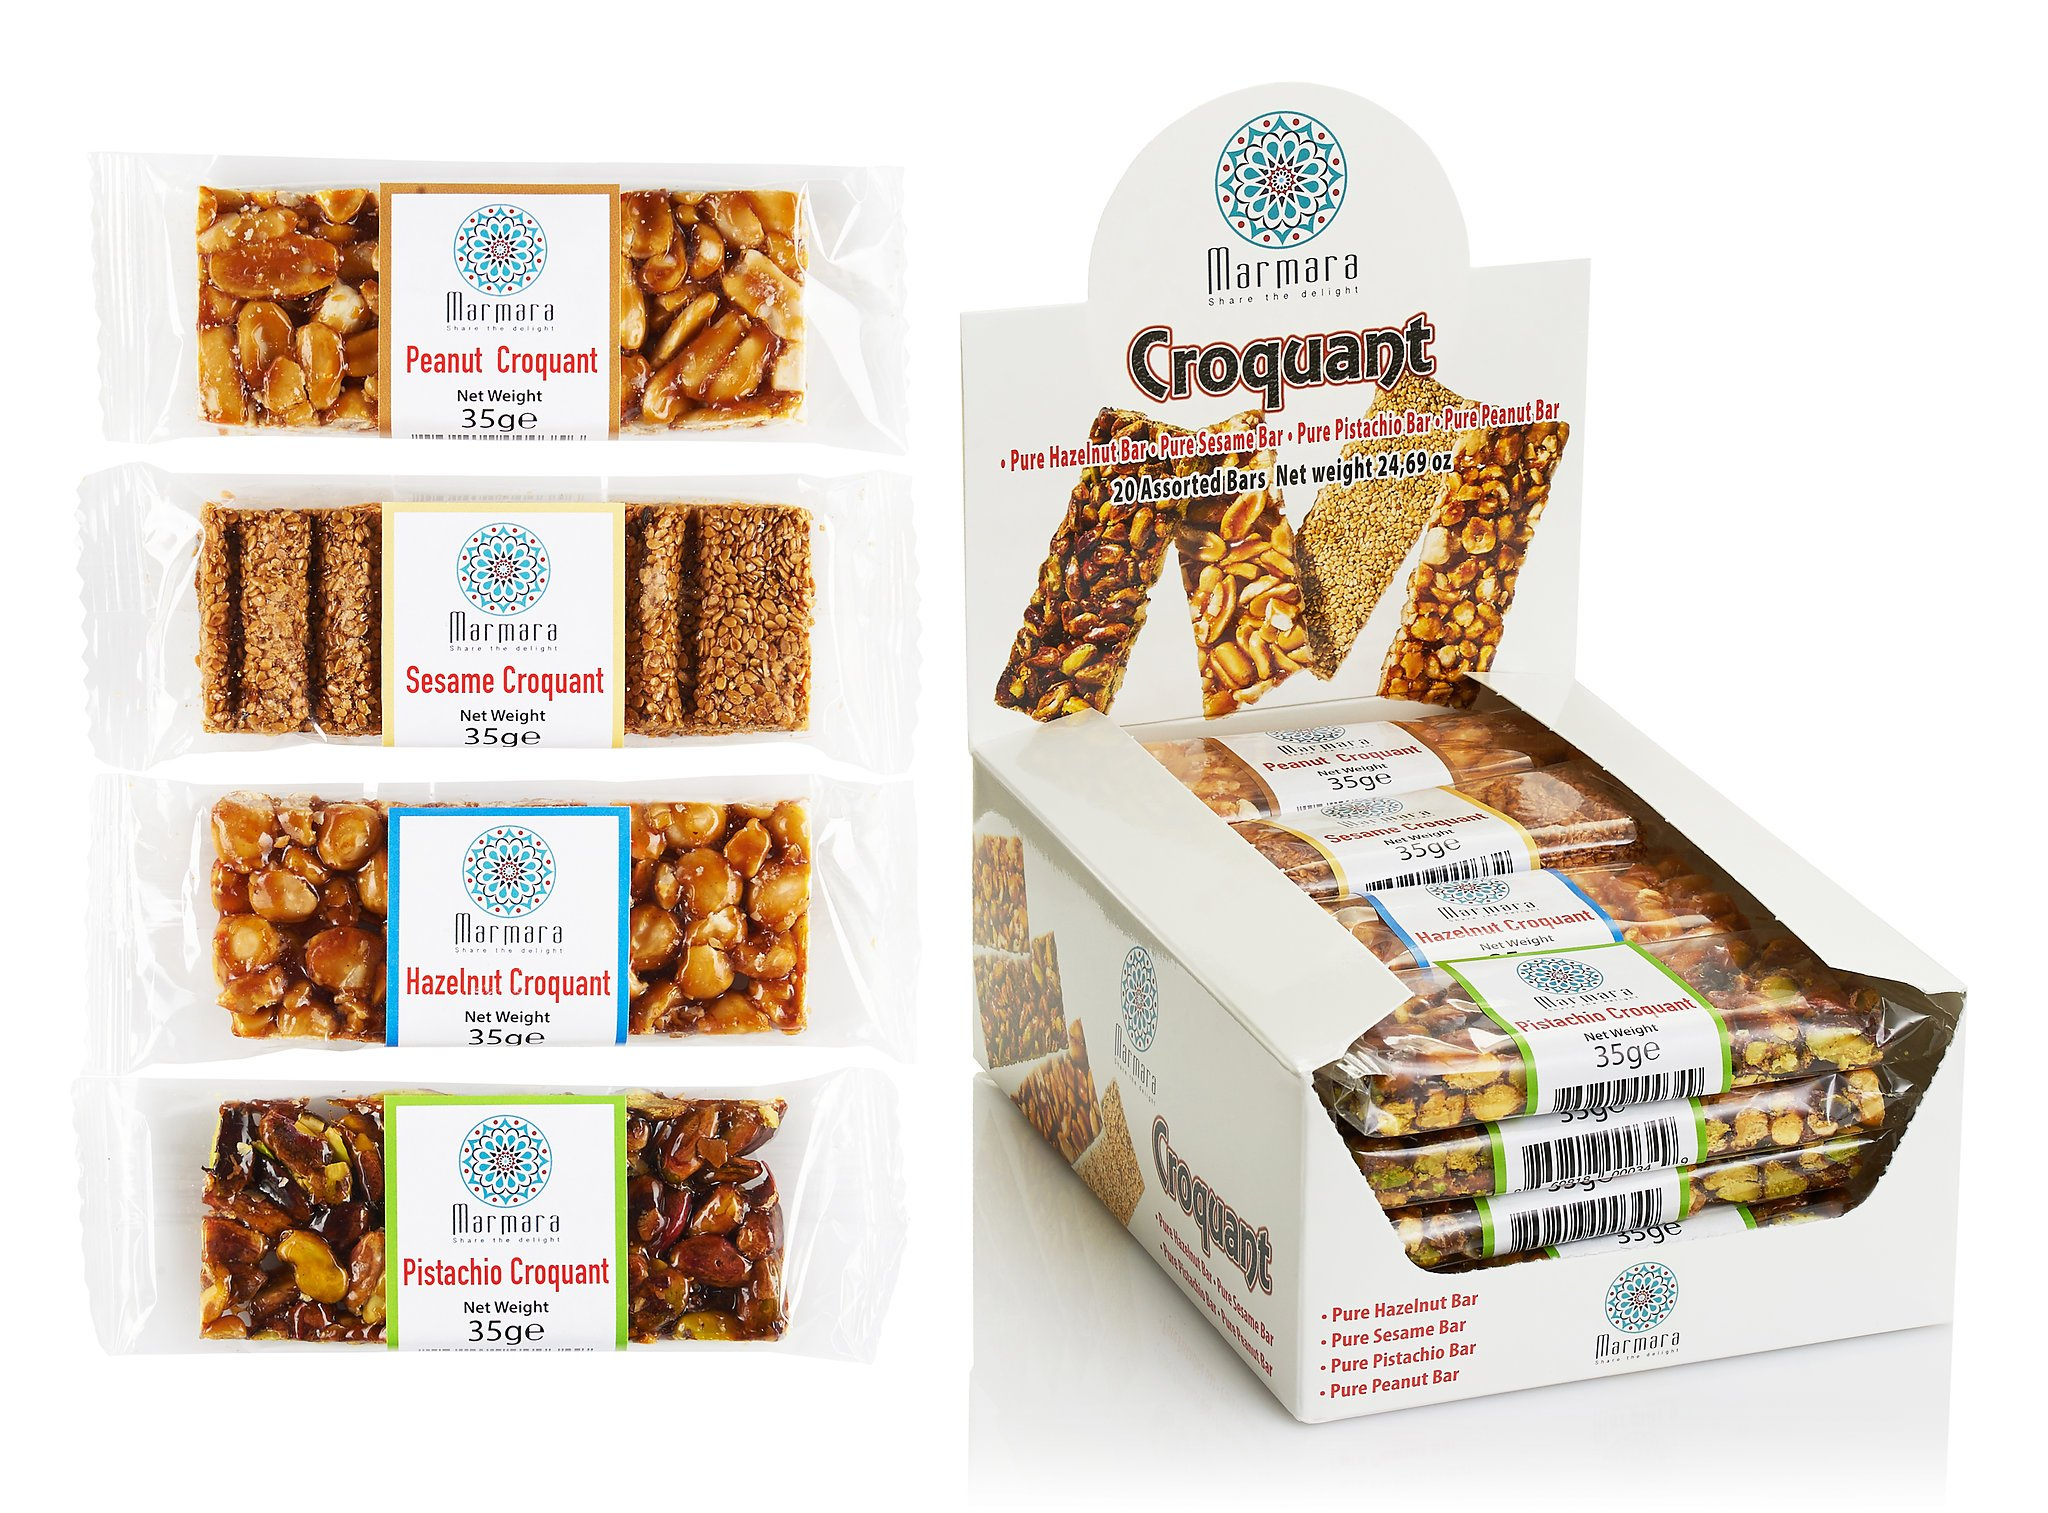 Marmara Croquant Healthy Nut Bars Variety Pack including Pistachio Peanut Sesame and Hazelnut 20 Individually Packed Bars 1.2 Oz each by Marmara Share the Delight